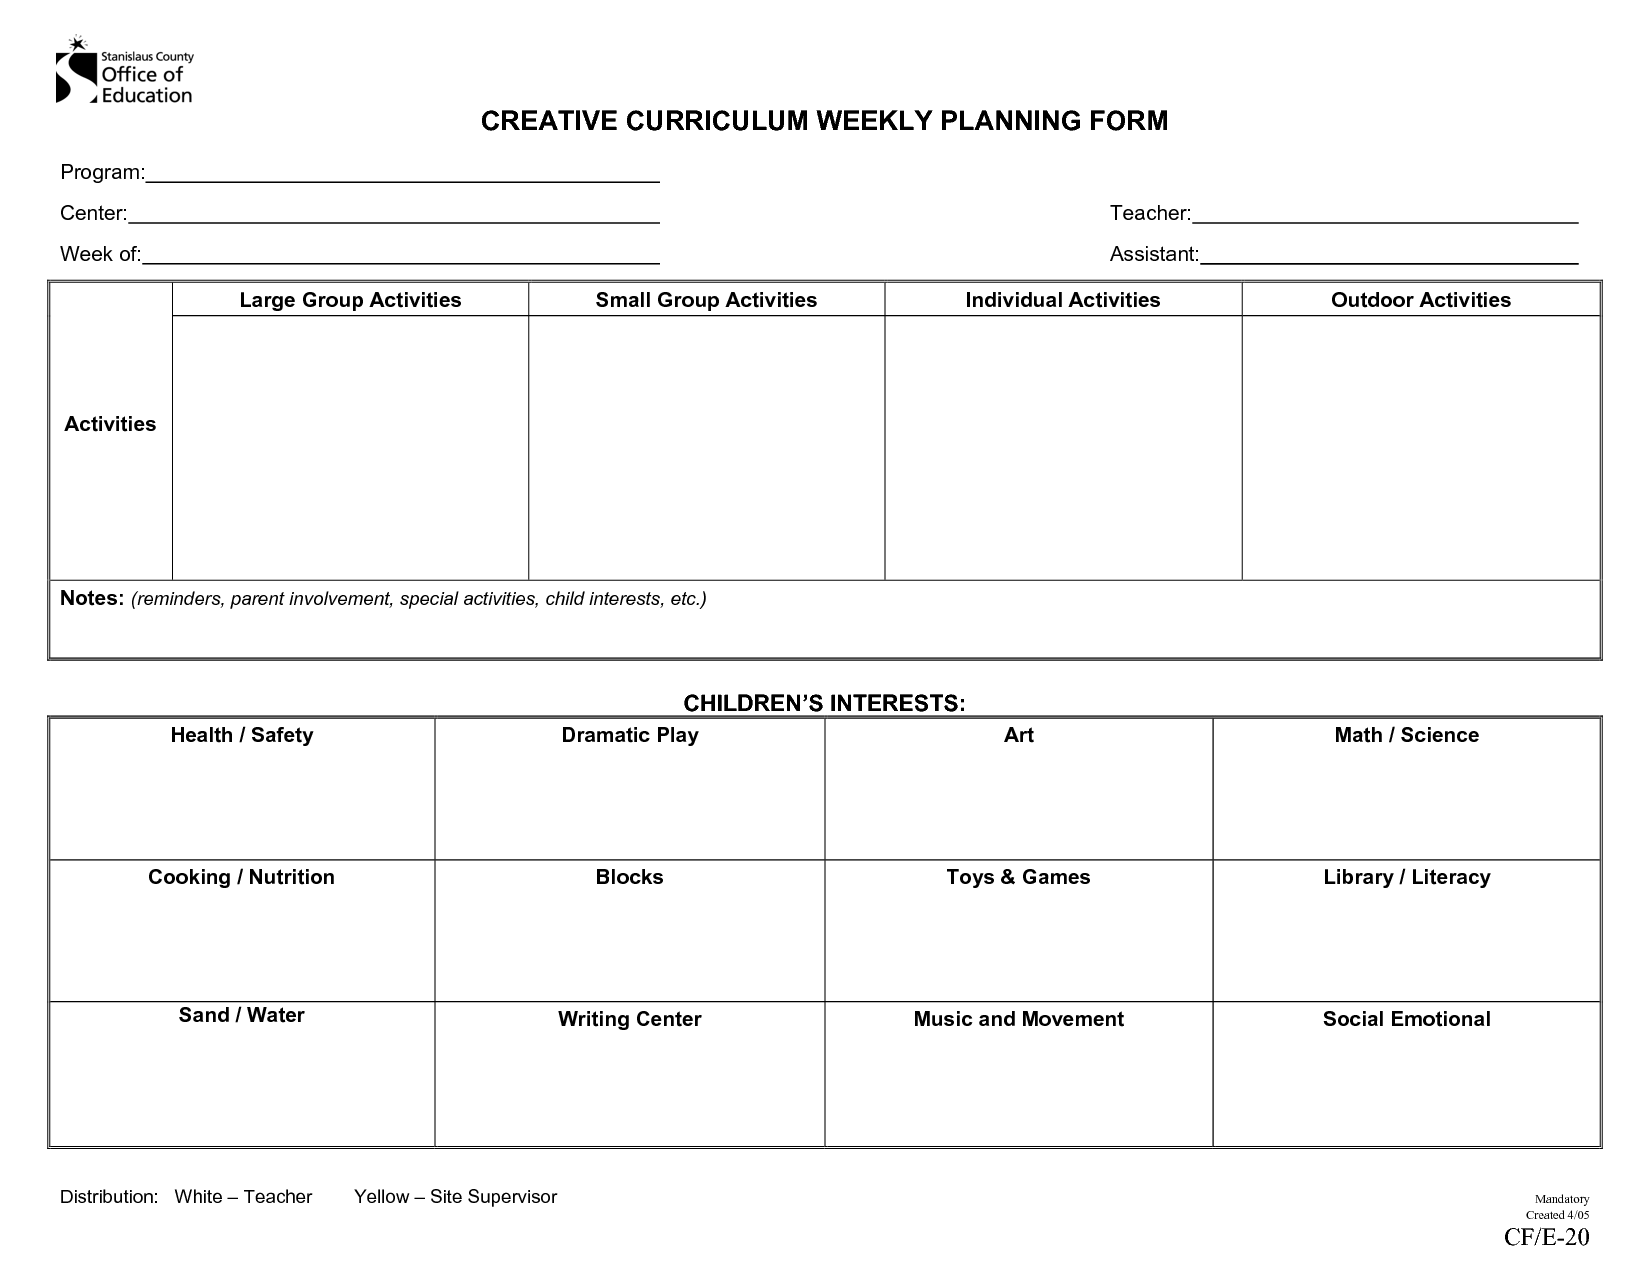 Creative curriculum blank lesson plan creative curriculum weekly creative curriculum blank lesson plan creative curriculum weekly plan maxwellsz